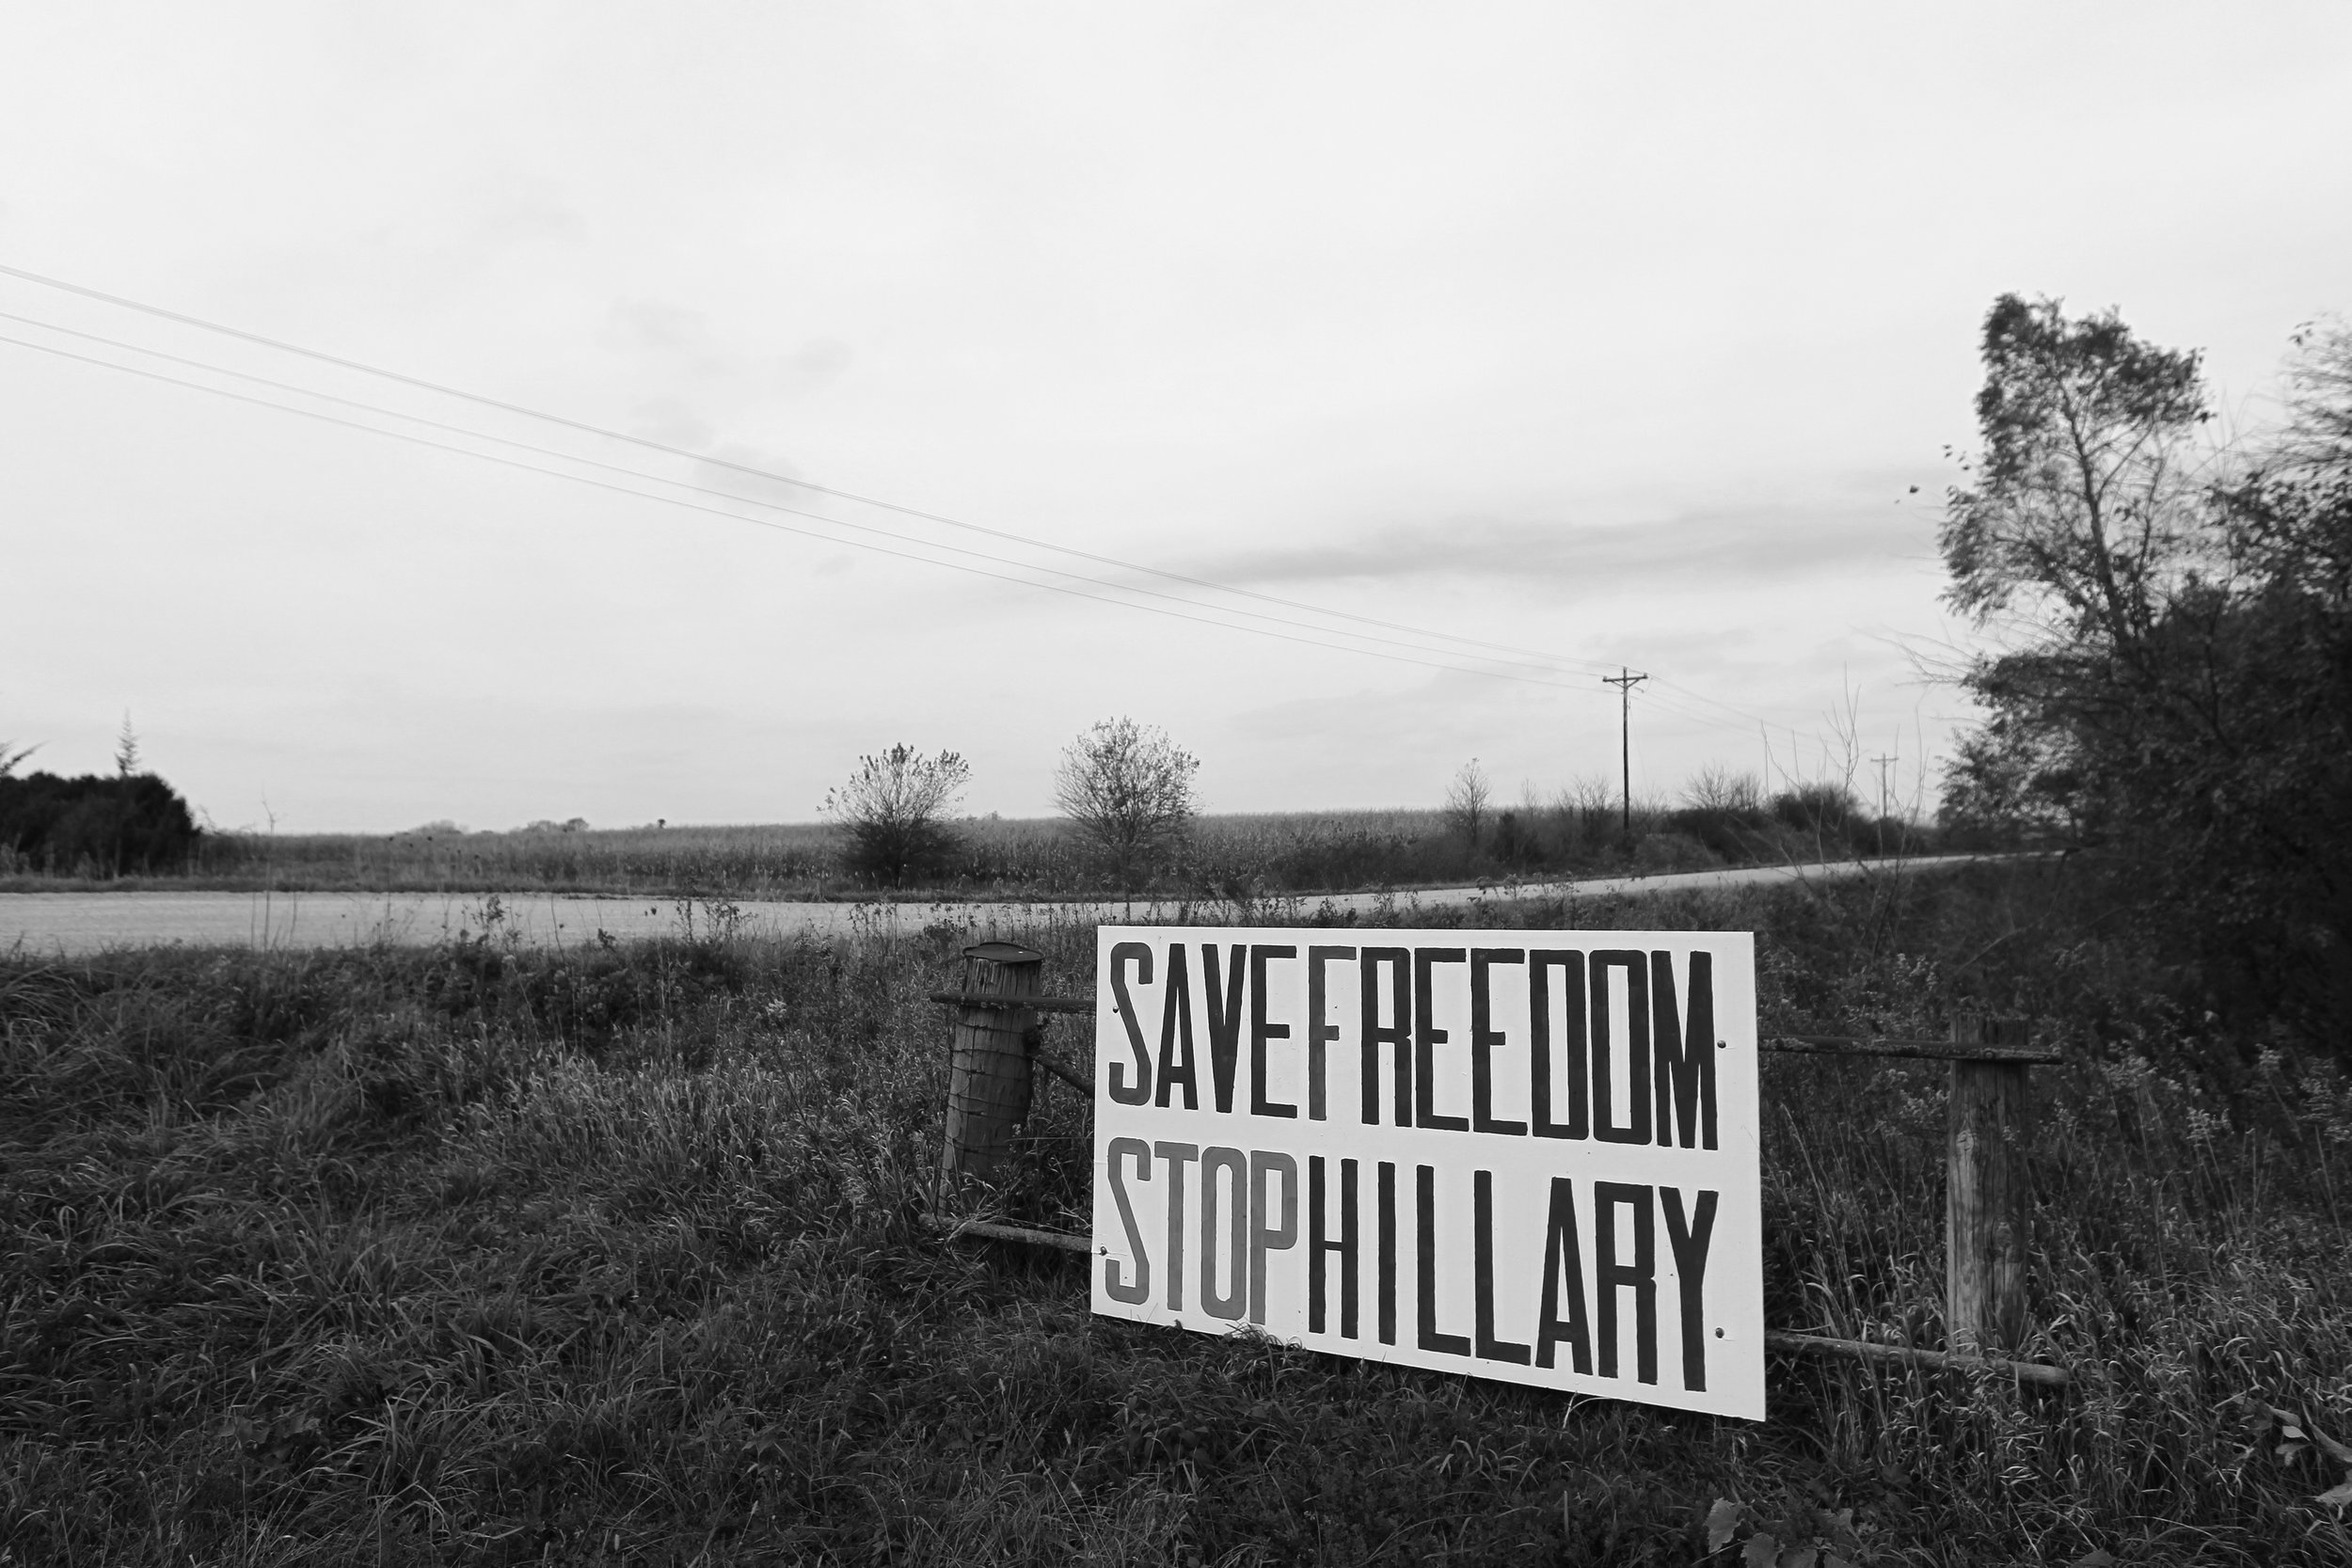 A large anti-Hillary Clinton sign is pictured in rural Tipton.